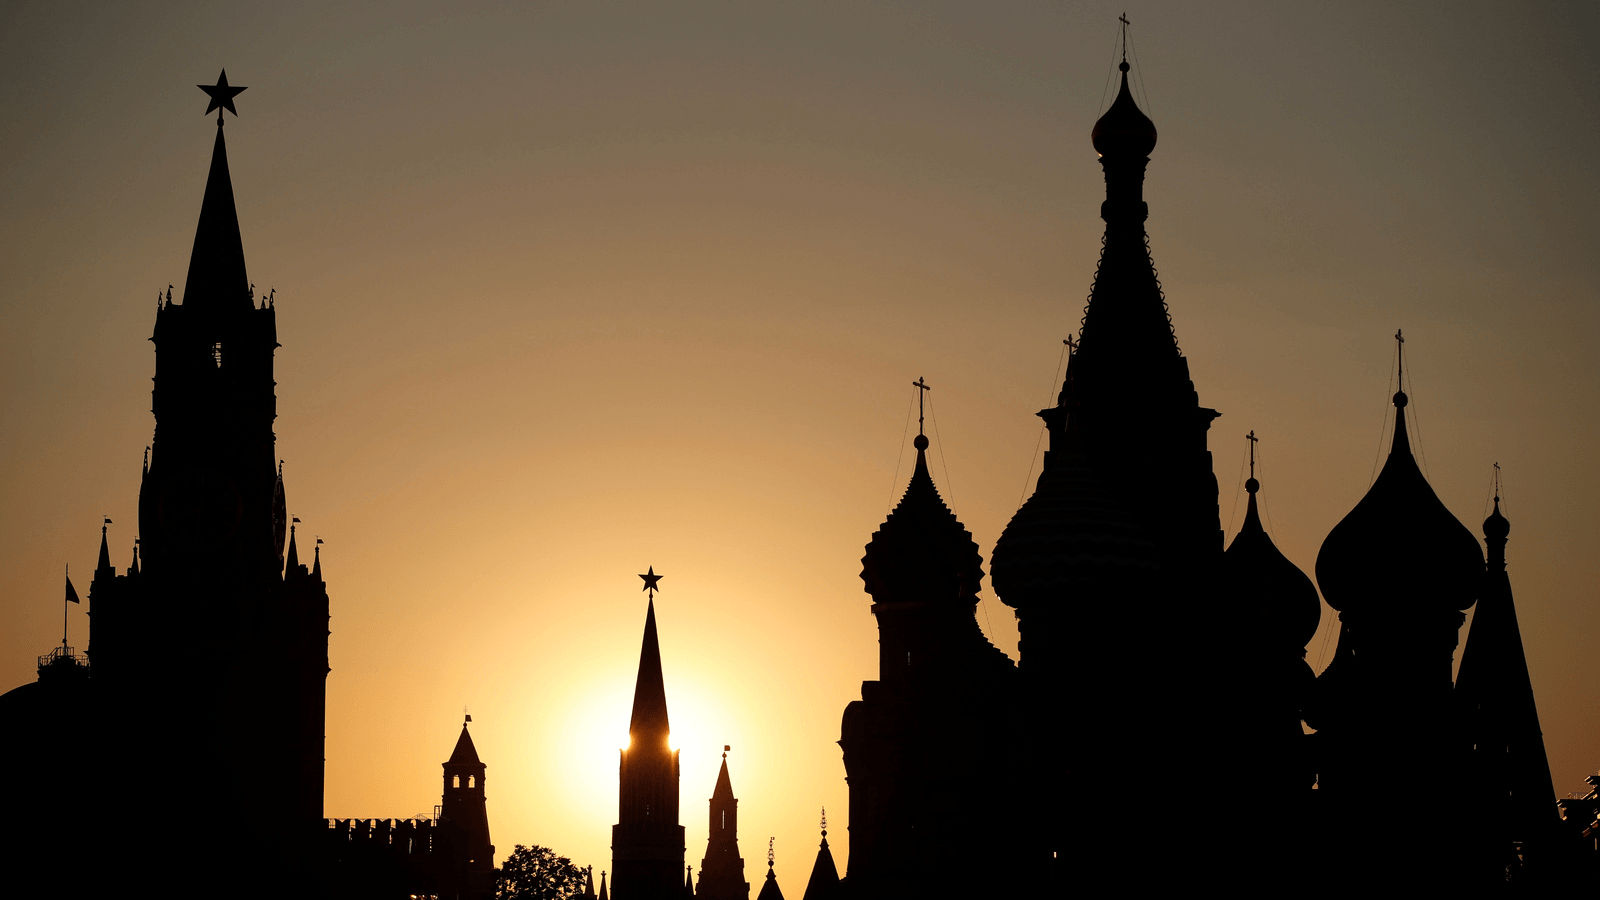 a profile view of the Kremlin in Moscow at sunset